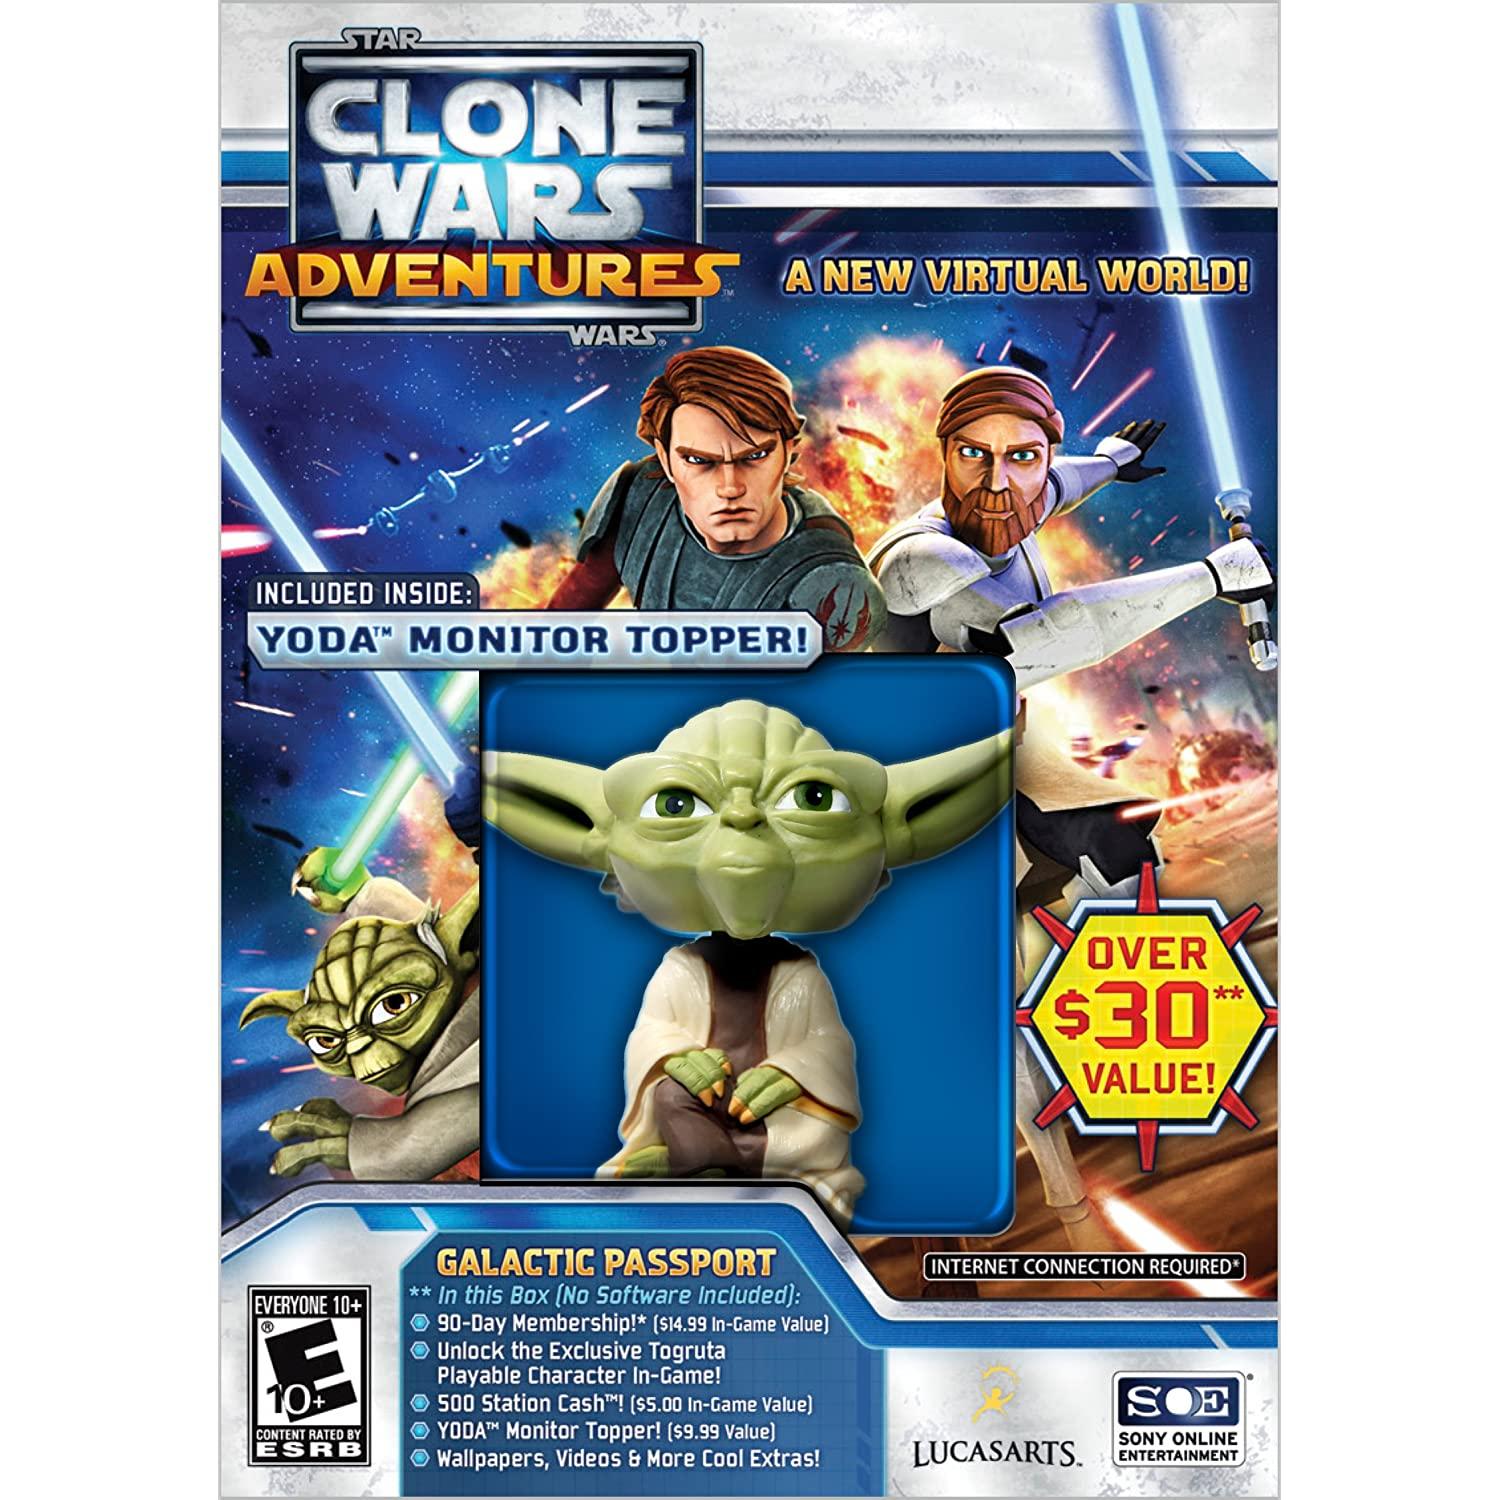 Clone Wars Adventures Cheats For Station Cash